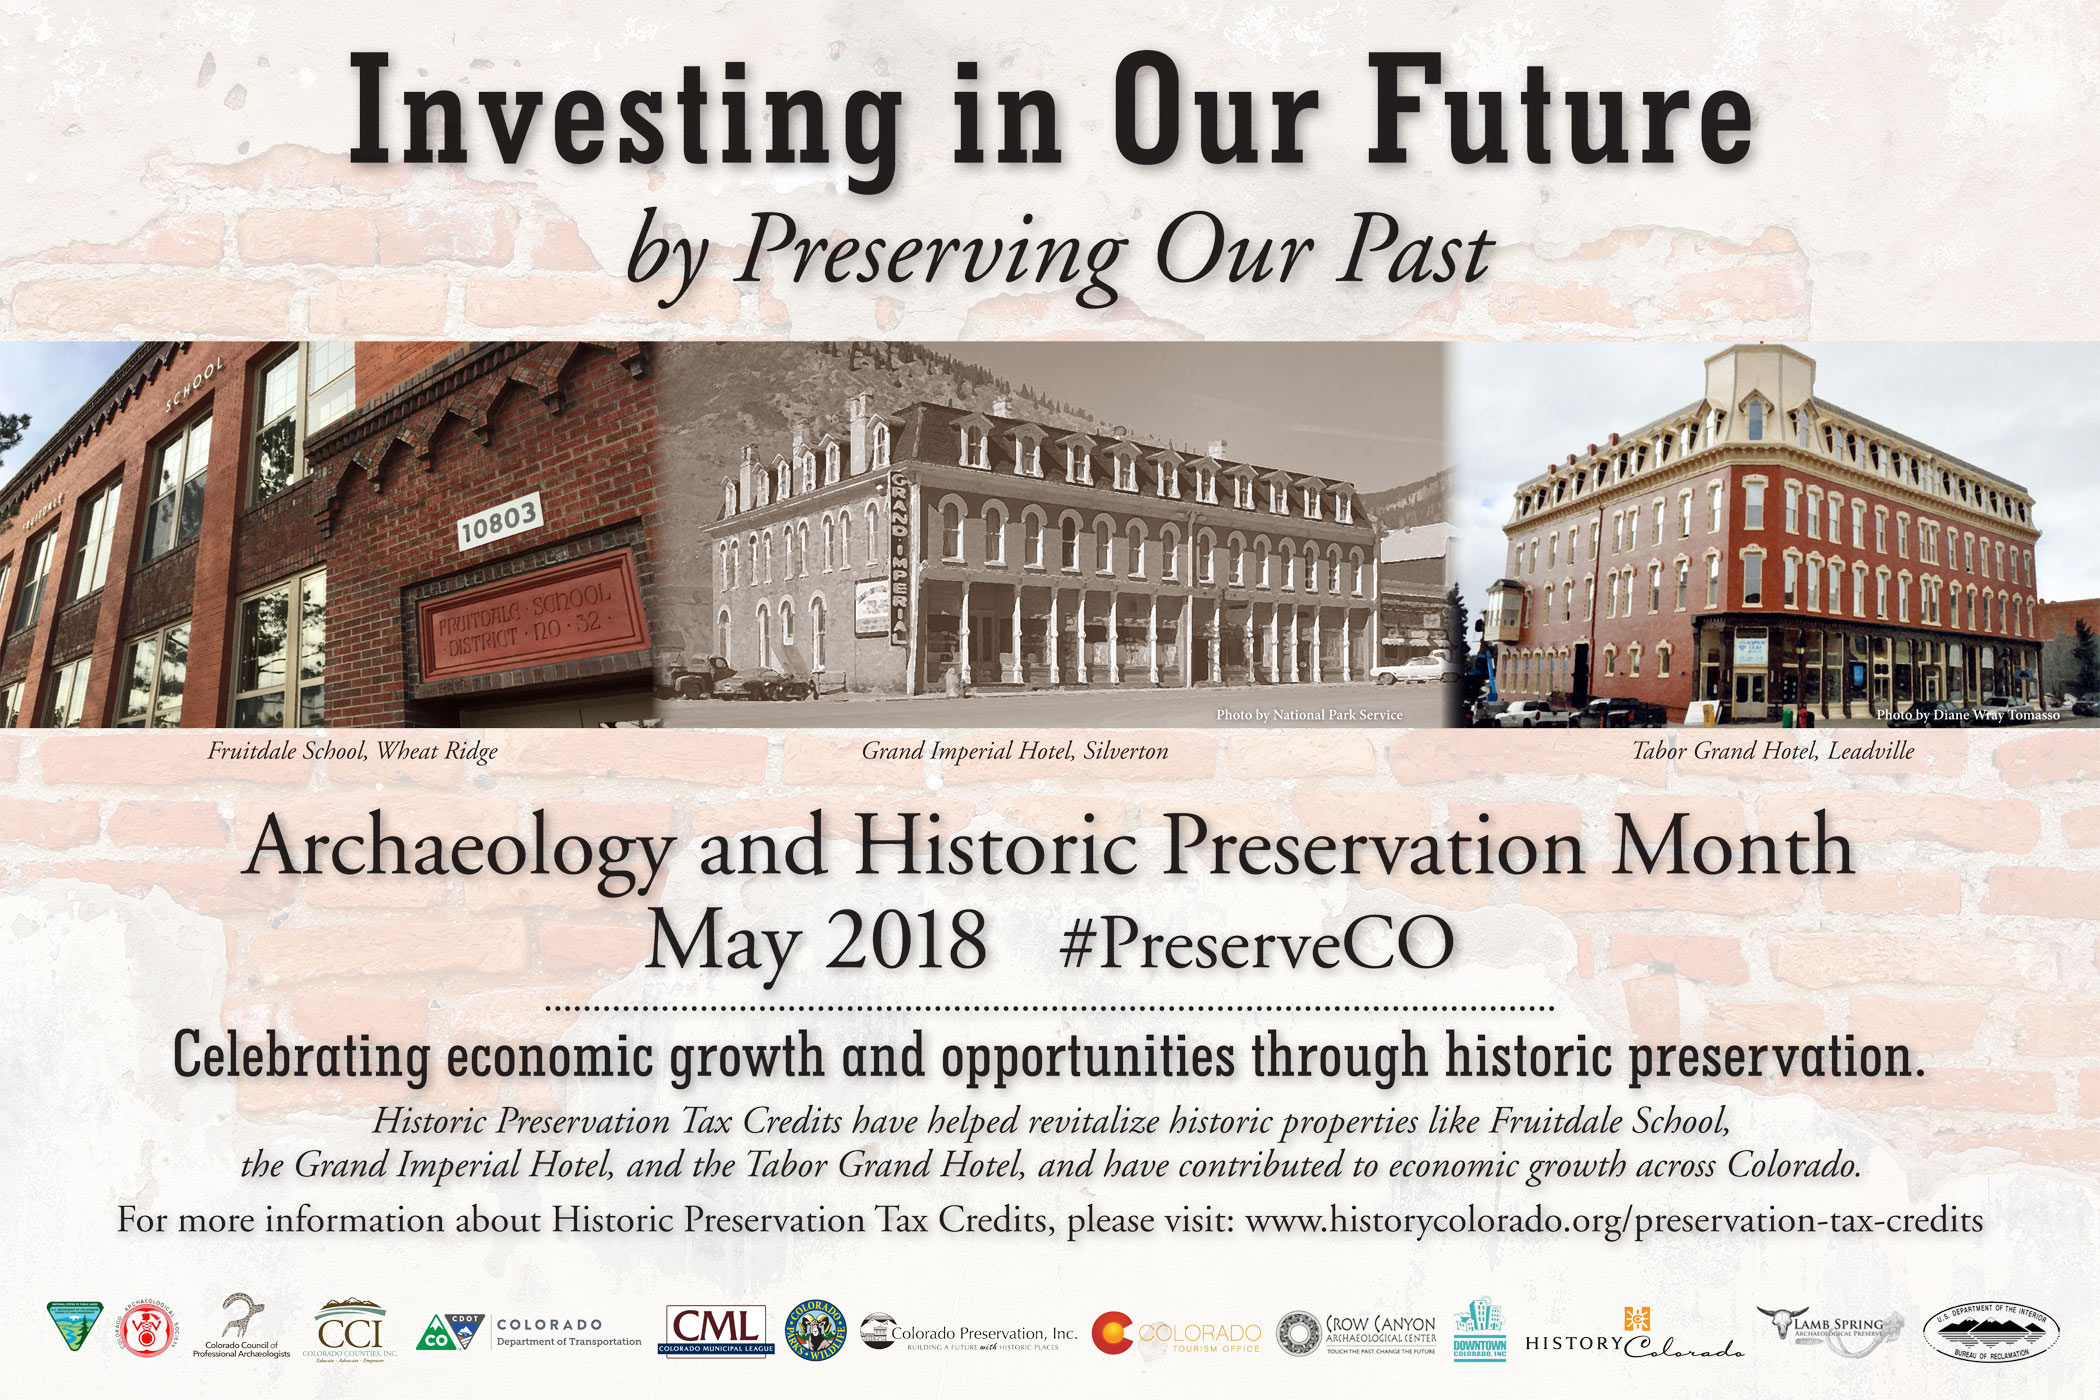 2018 Archaeology & Historic Preservation Month poster.